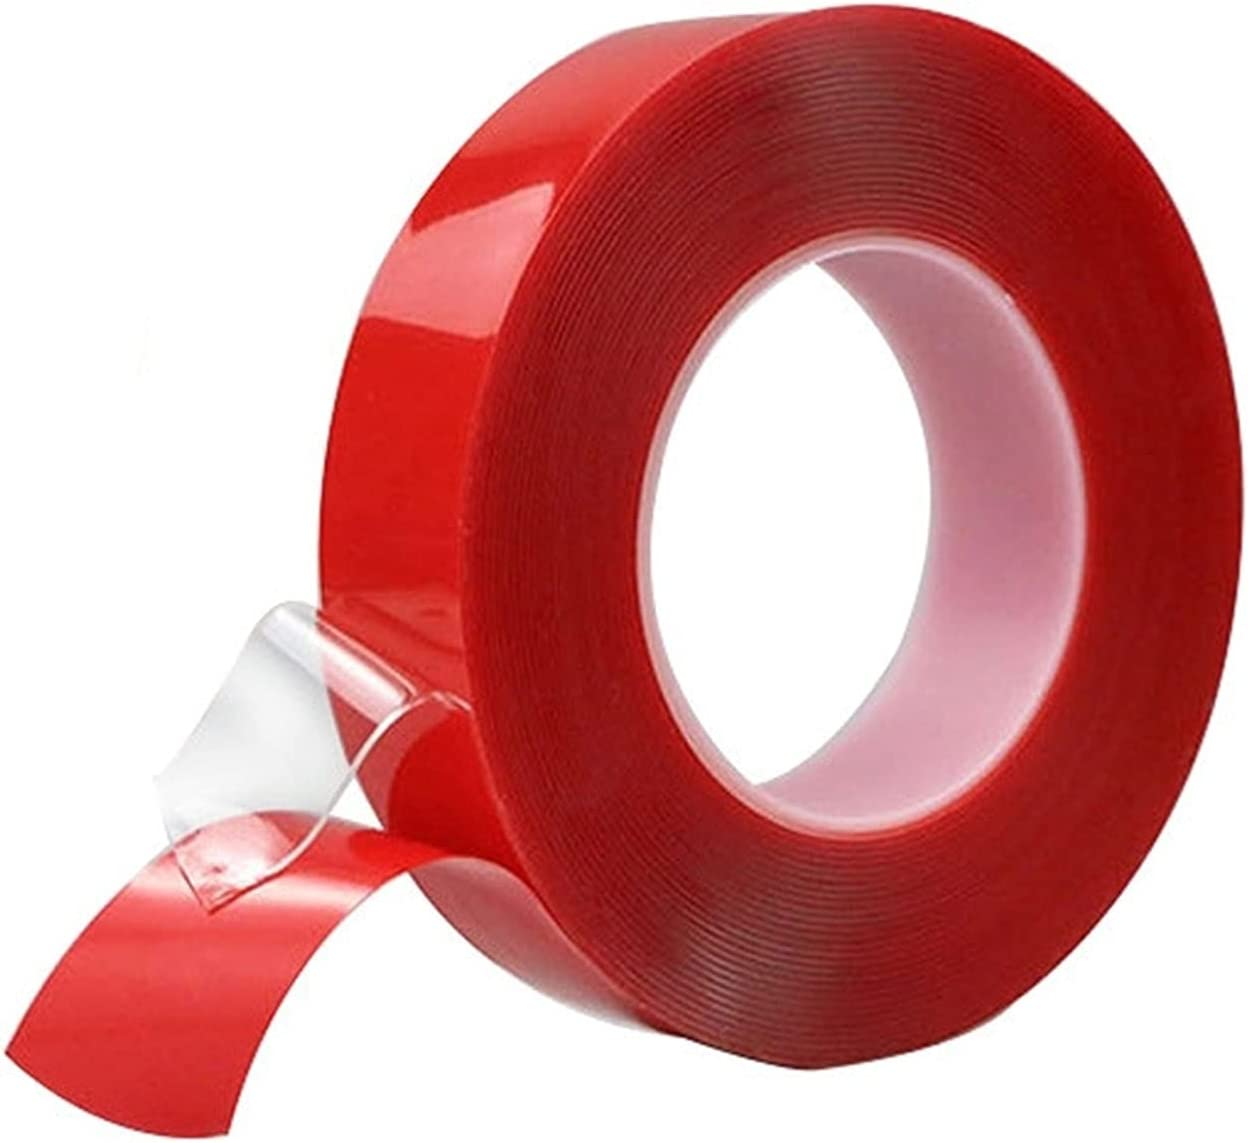 10M Red Double Max 75% OFF Faced Tape- OFFicial store Adhesive Adh Sided Transparent